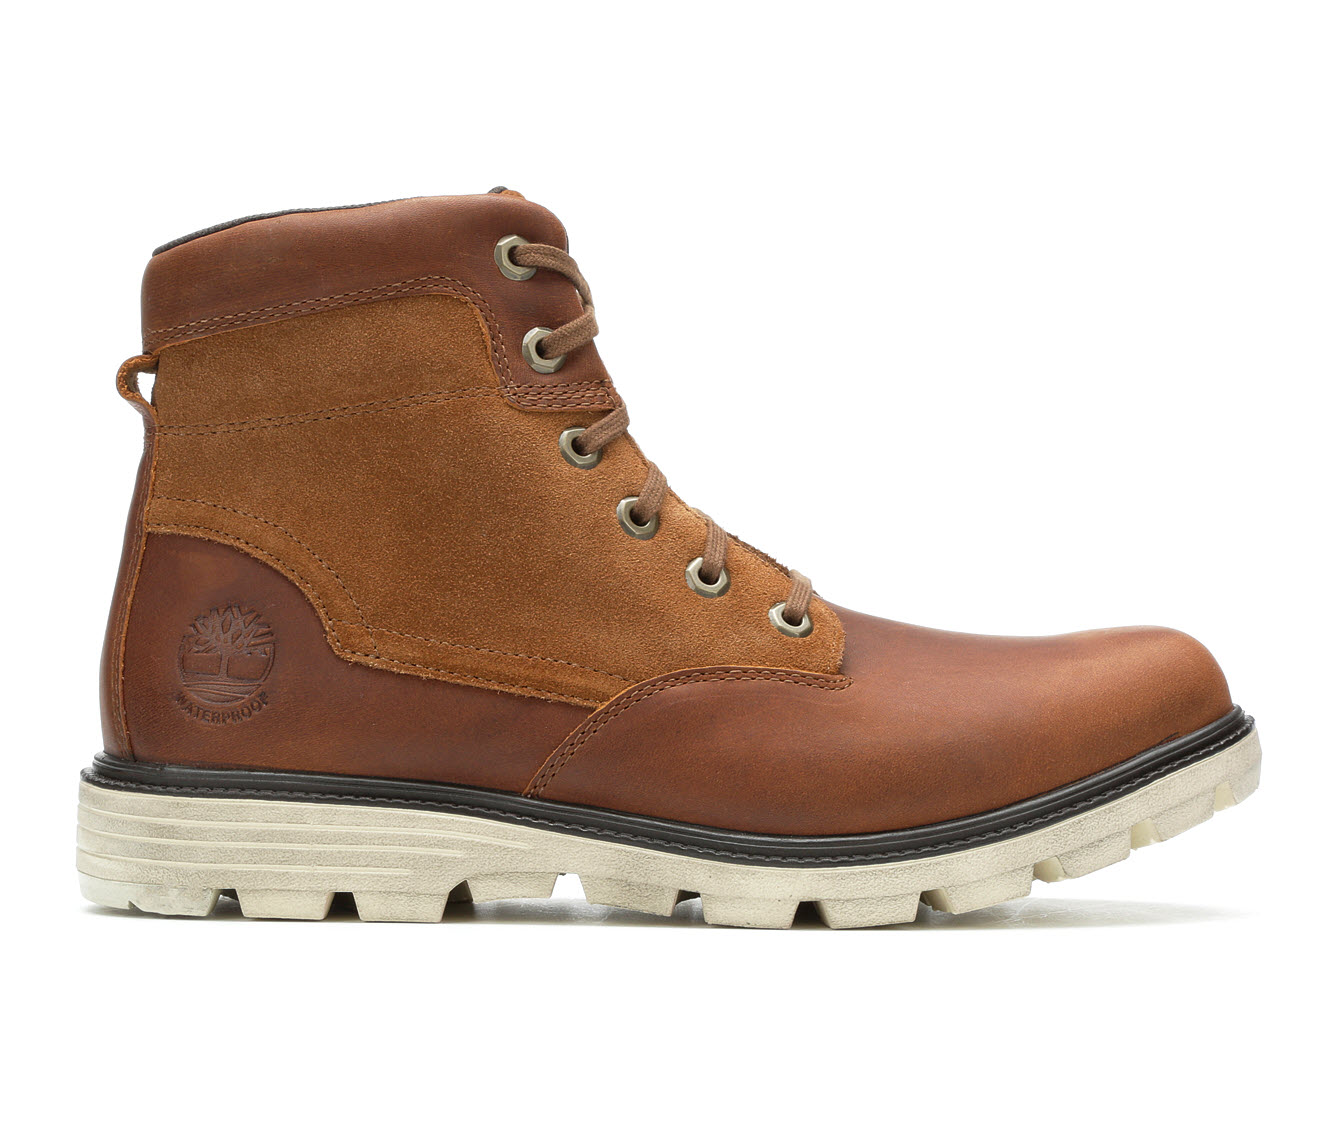 Timberland Walden Park Men's Boots (Brown Leather)